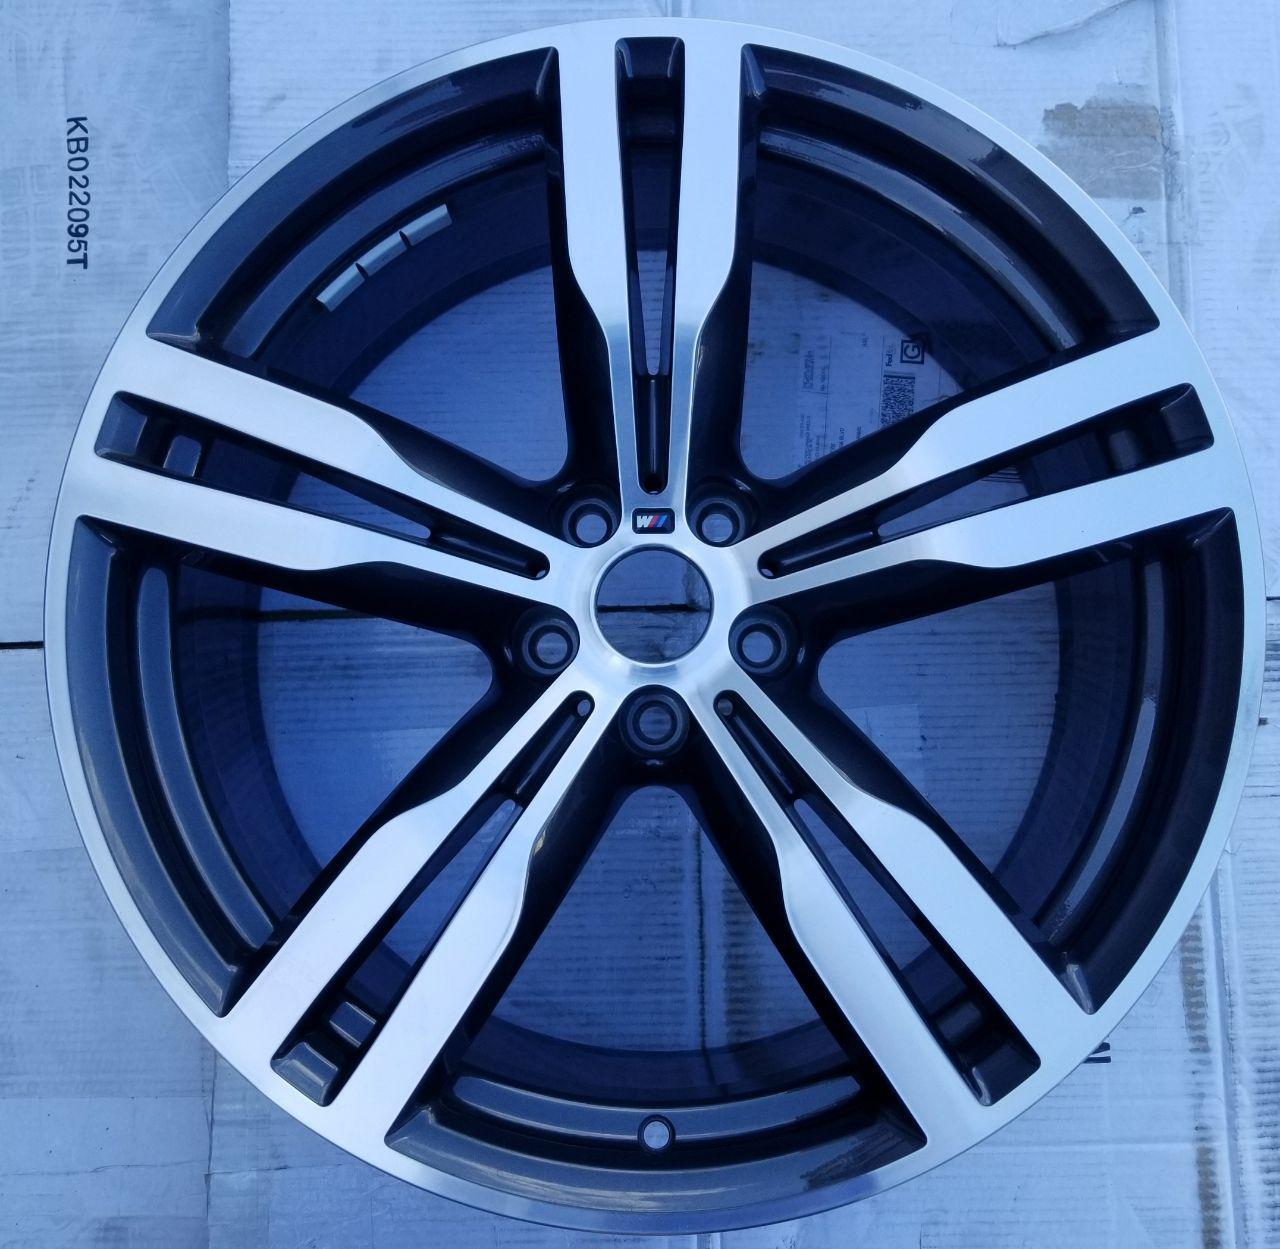 - OEM WHEELS - 2016 BMW 7 SERIES 20x8.5 5 DBL SPOKE Hollander #86281 /  USED